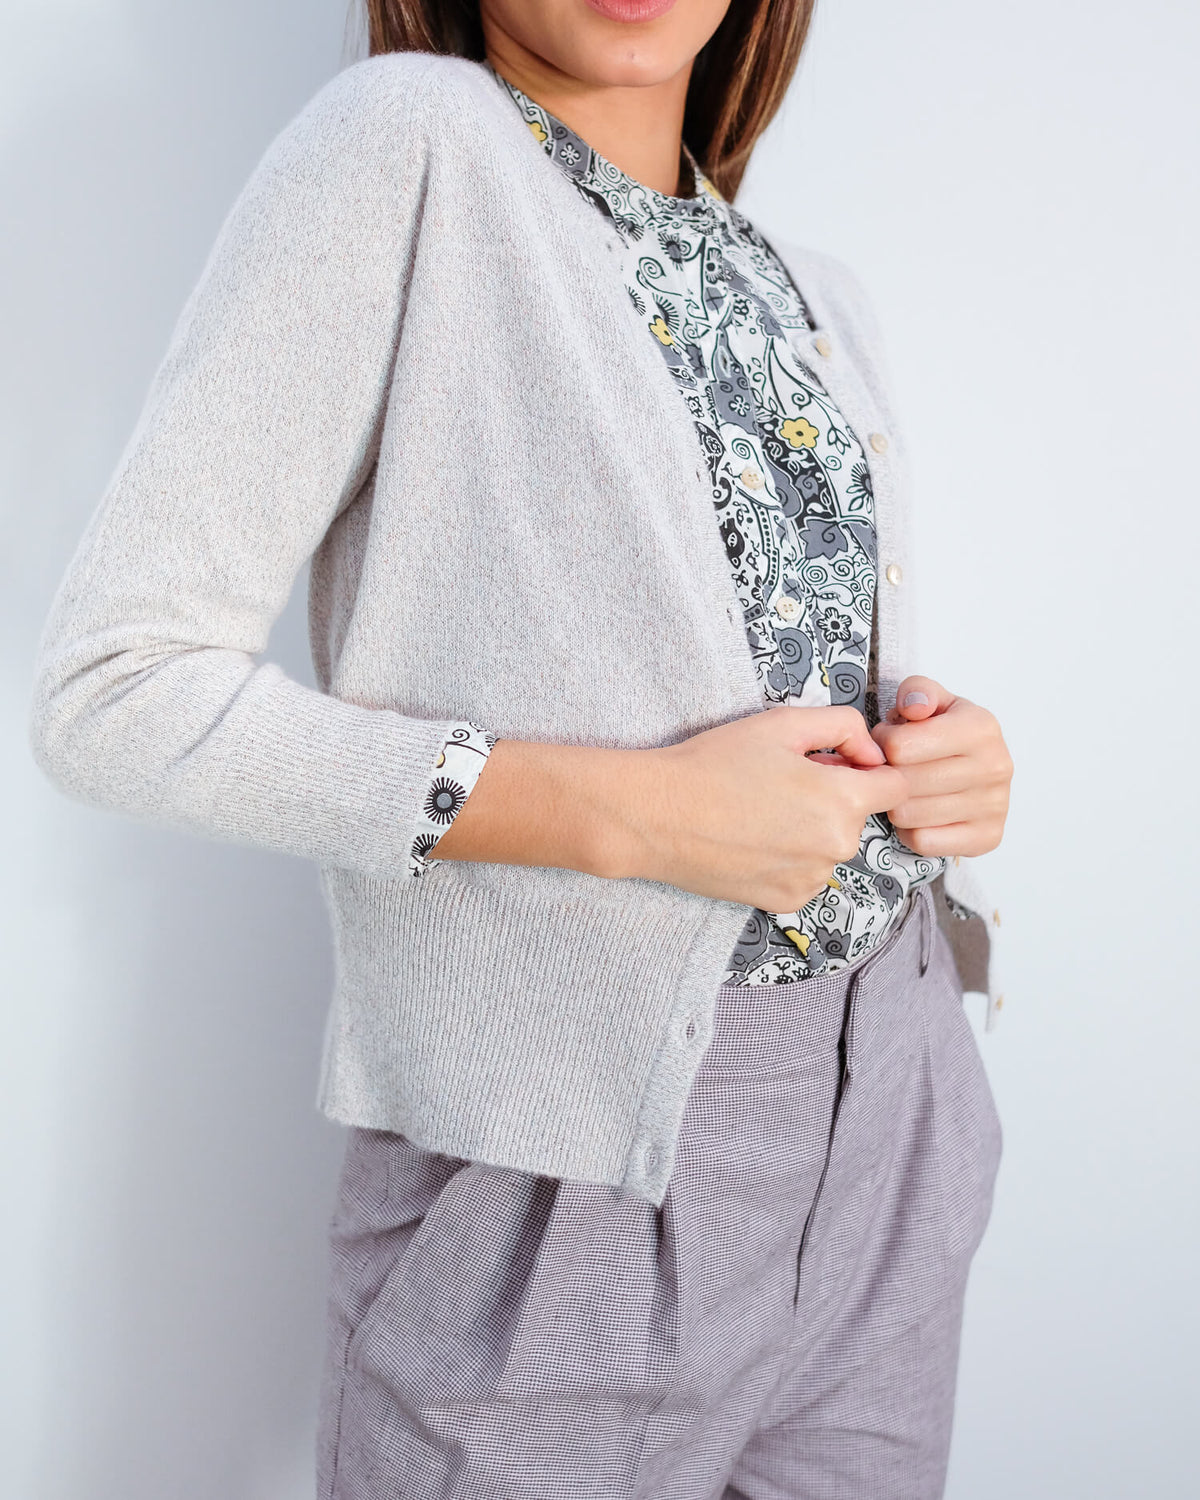 JU Lurex cardigan in cream